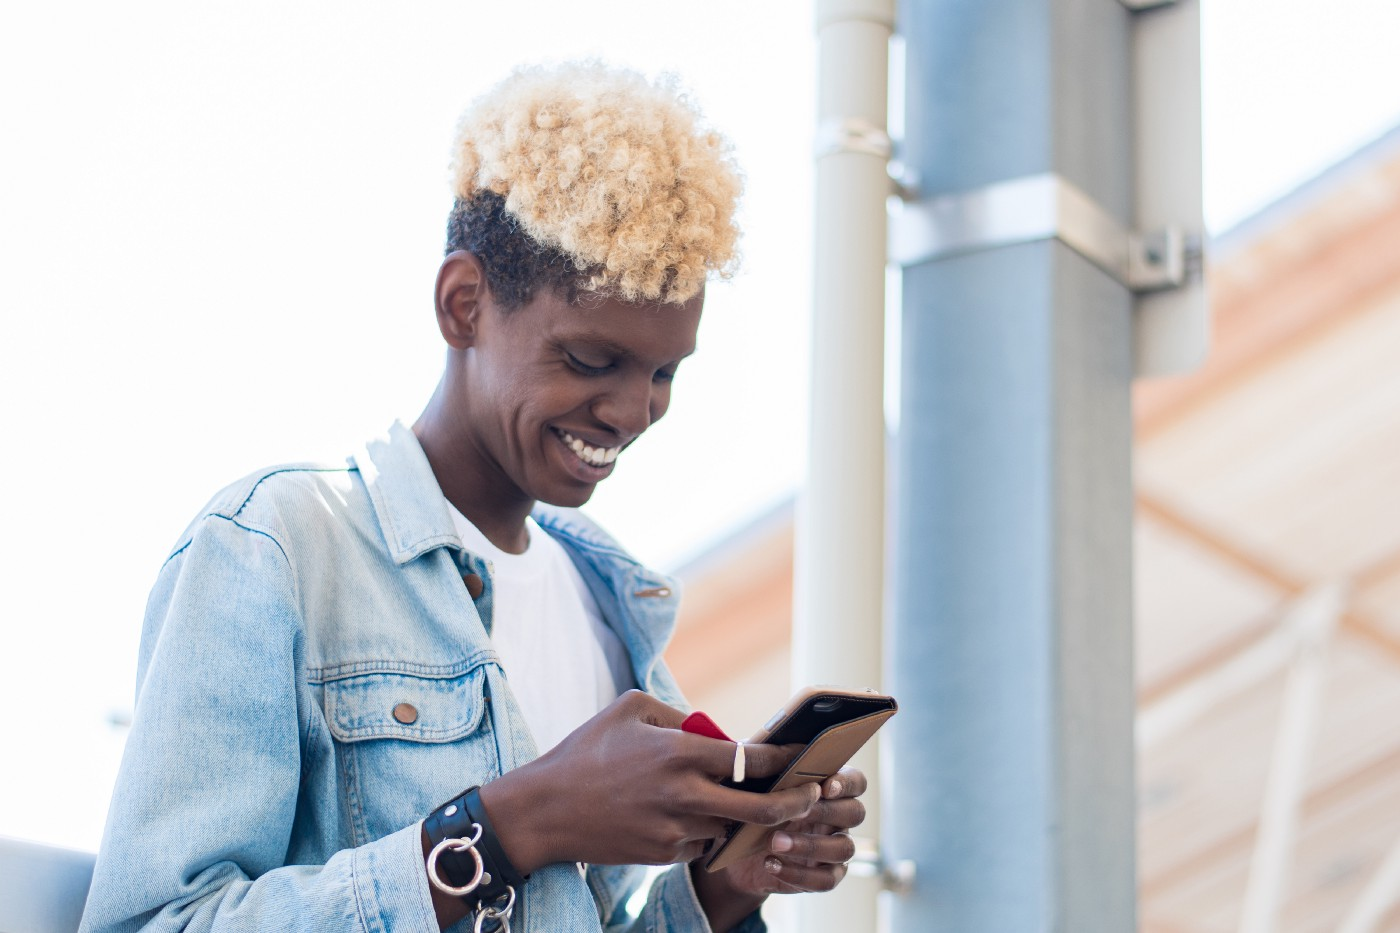 A side view of a non-binary African American person using their smartphone.